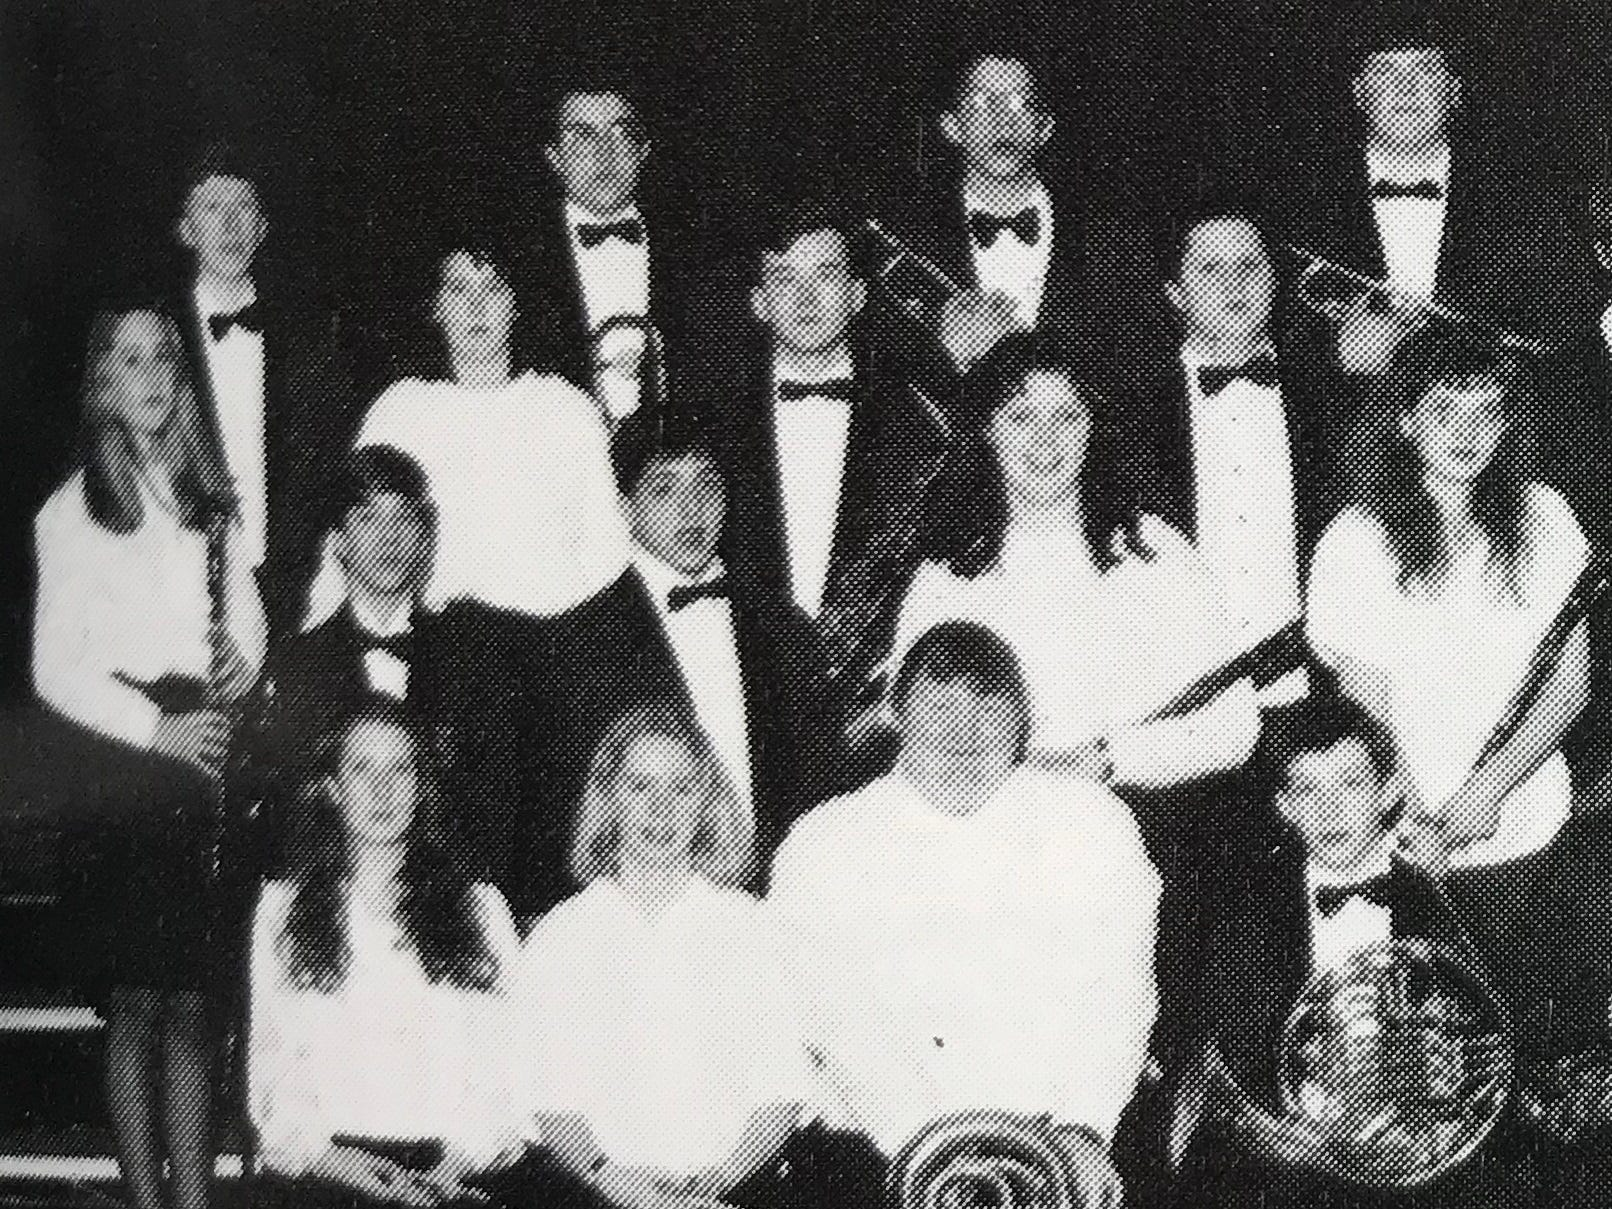 Jamie Davidson played oboe in the South Salem High School Concert Band as a sophomore. She is seated in the front row and first from the left in this photo from the 1993 yearbook.